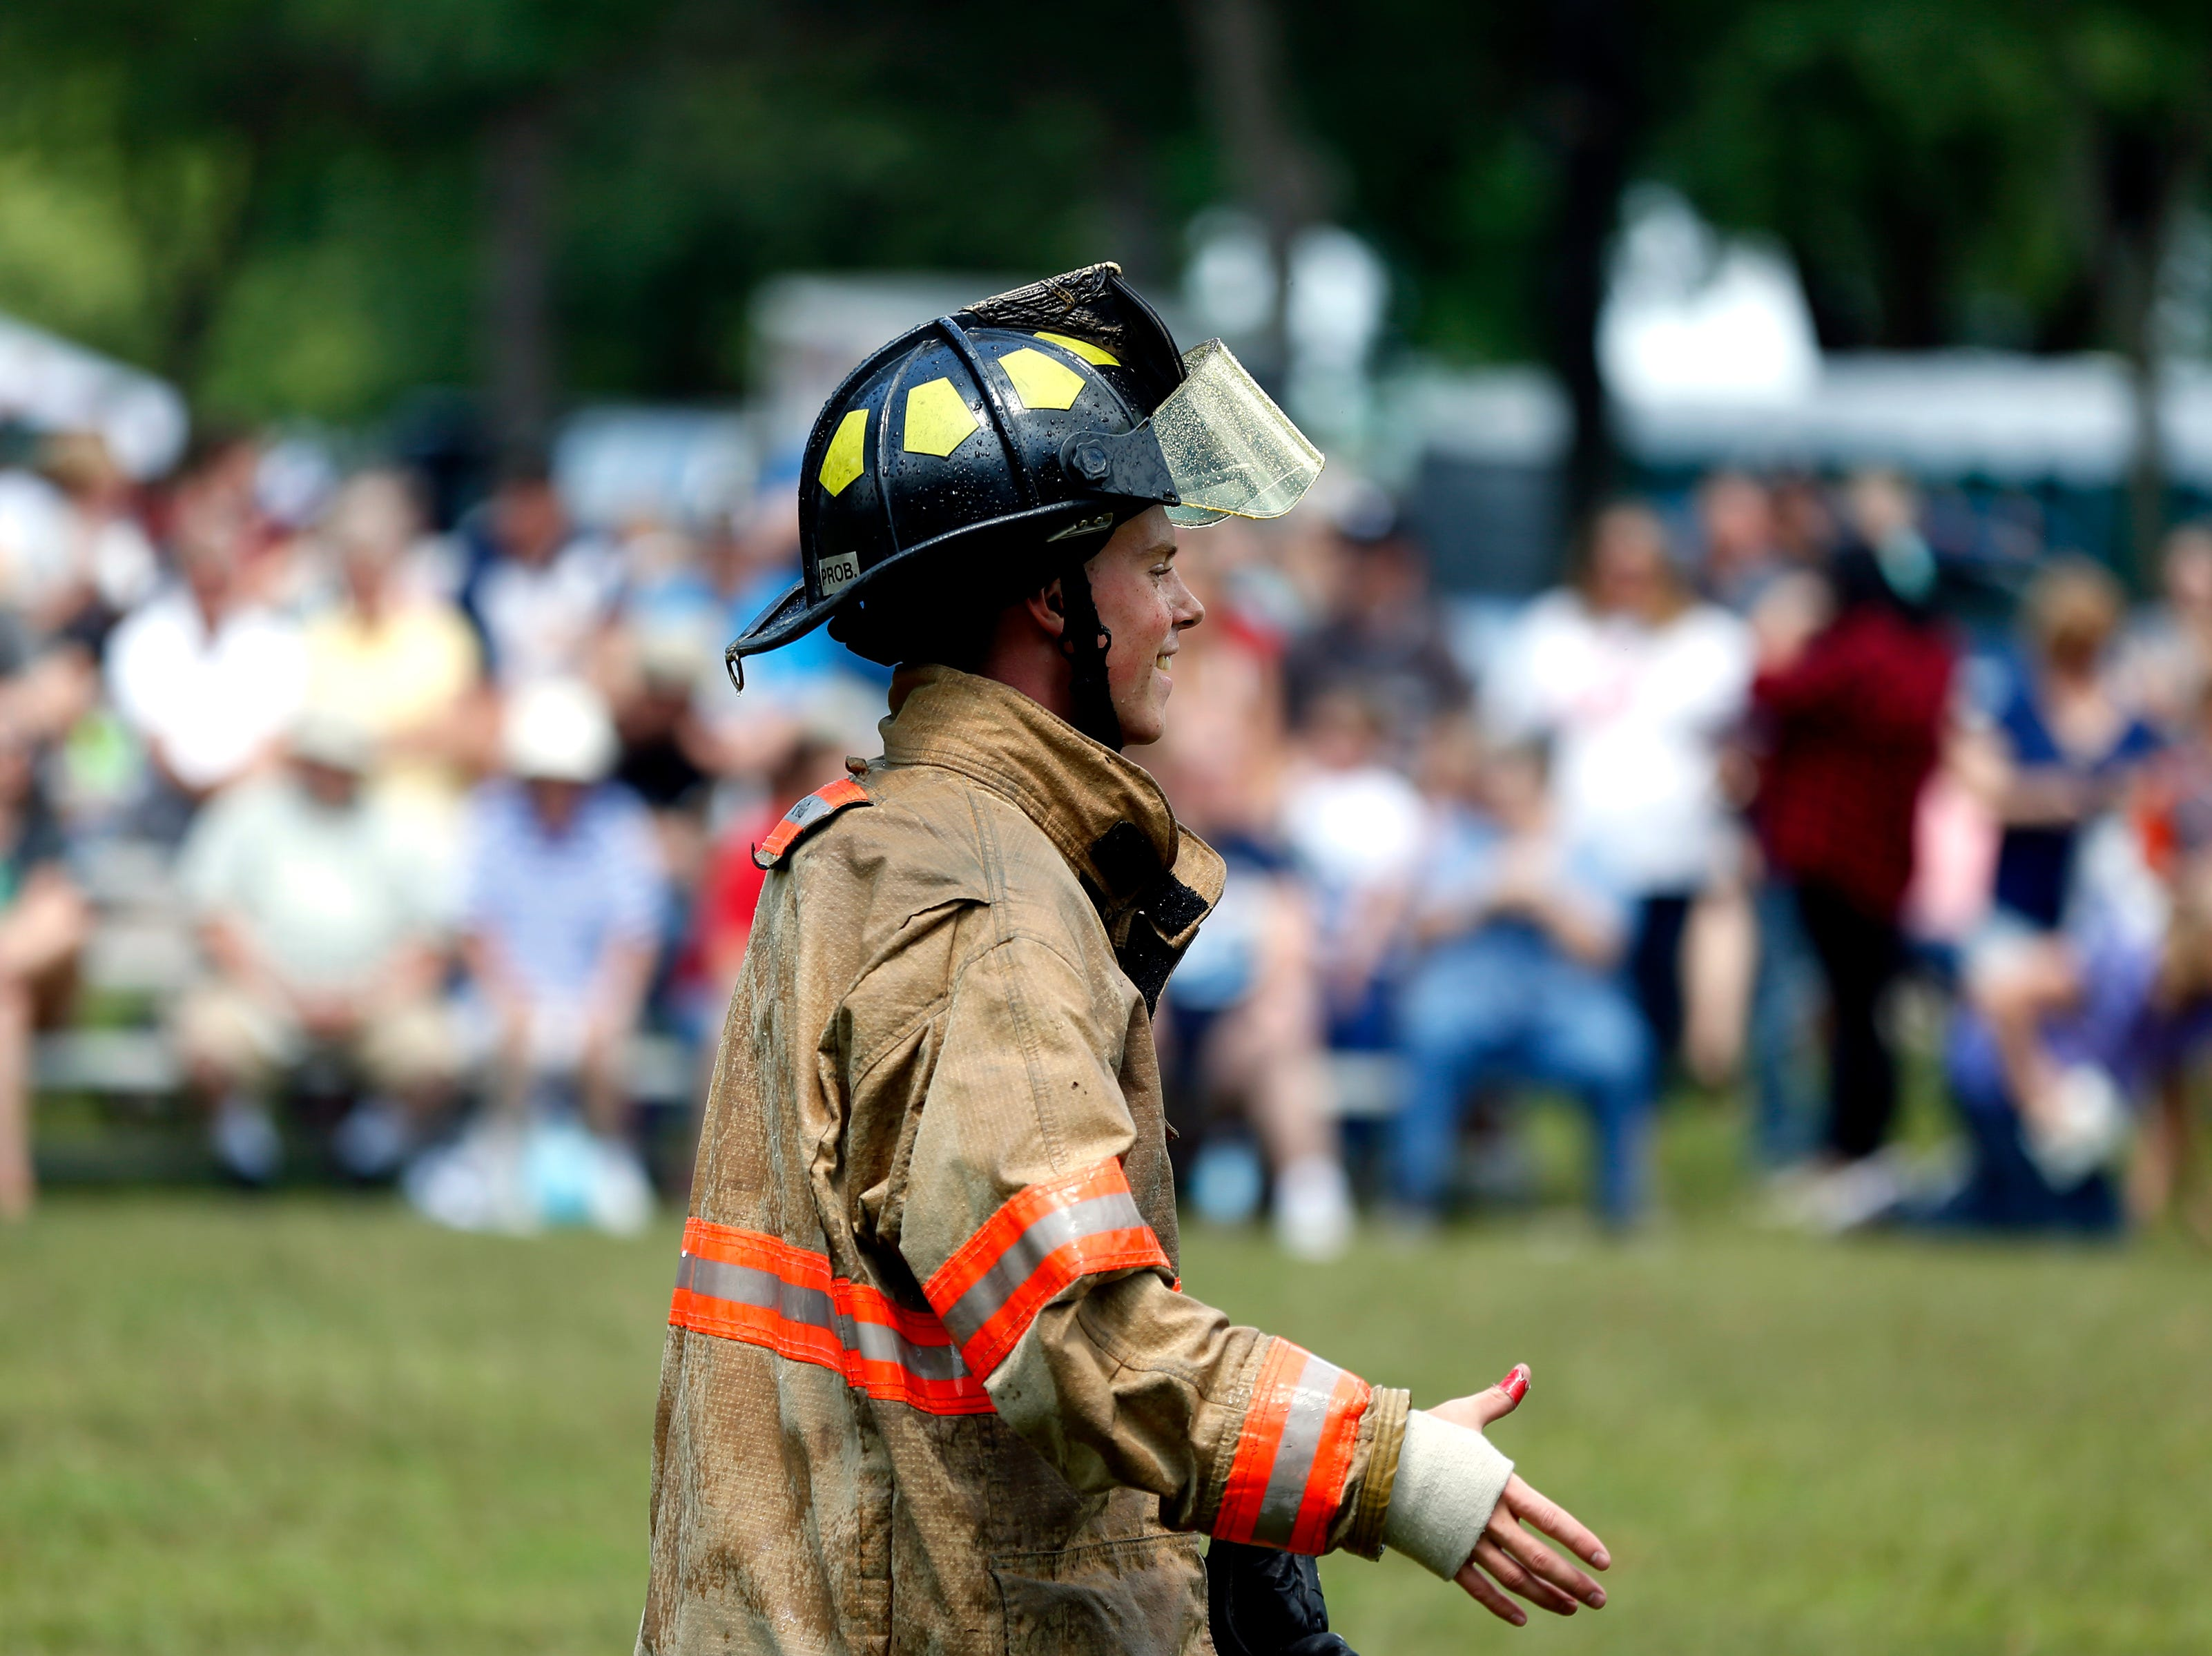 A firefighter prepares to shake hands with opponents during the water fights during Celebrate Plover at Lake Pacawa Park in Plover, Wis., July 28, 2018.